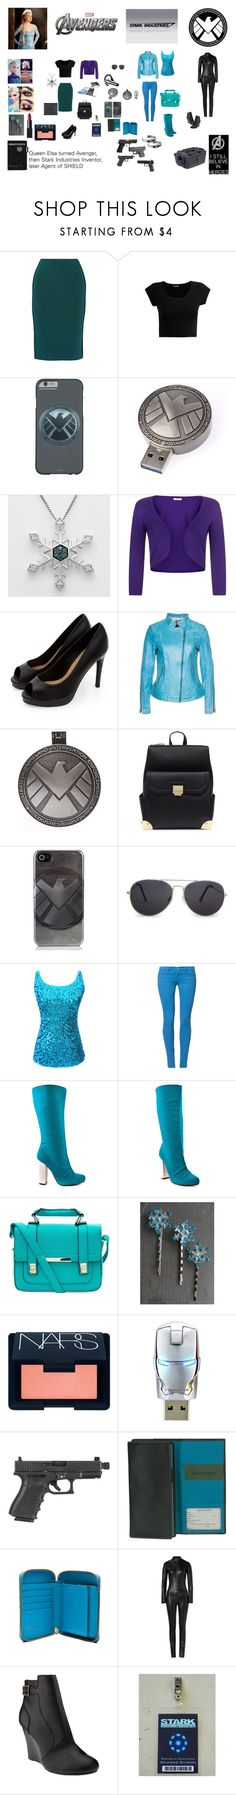 """""""Queen Elsa becomes The Unexpected Avenger, the Snow Queen; later becomes a new inventor at Stark Industries and eventually an Agent of SHIELD"""" by konekogakusei ❤ liked on Polyvore featuring Oscar de la Renta, Plantronics, Marvel, Precis Petite, Milestone, MANGO, Wrangler, Michael Antonio, Once Upon a Time and Disney"""